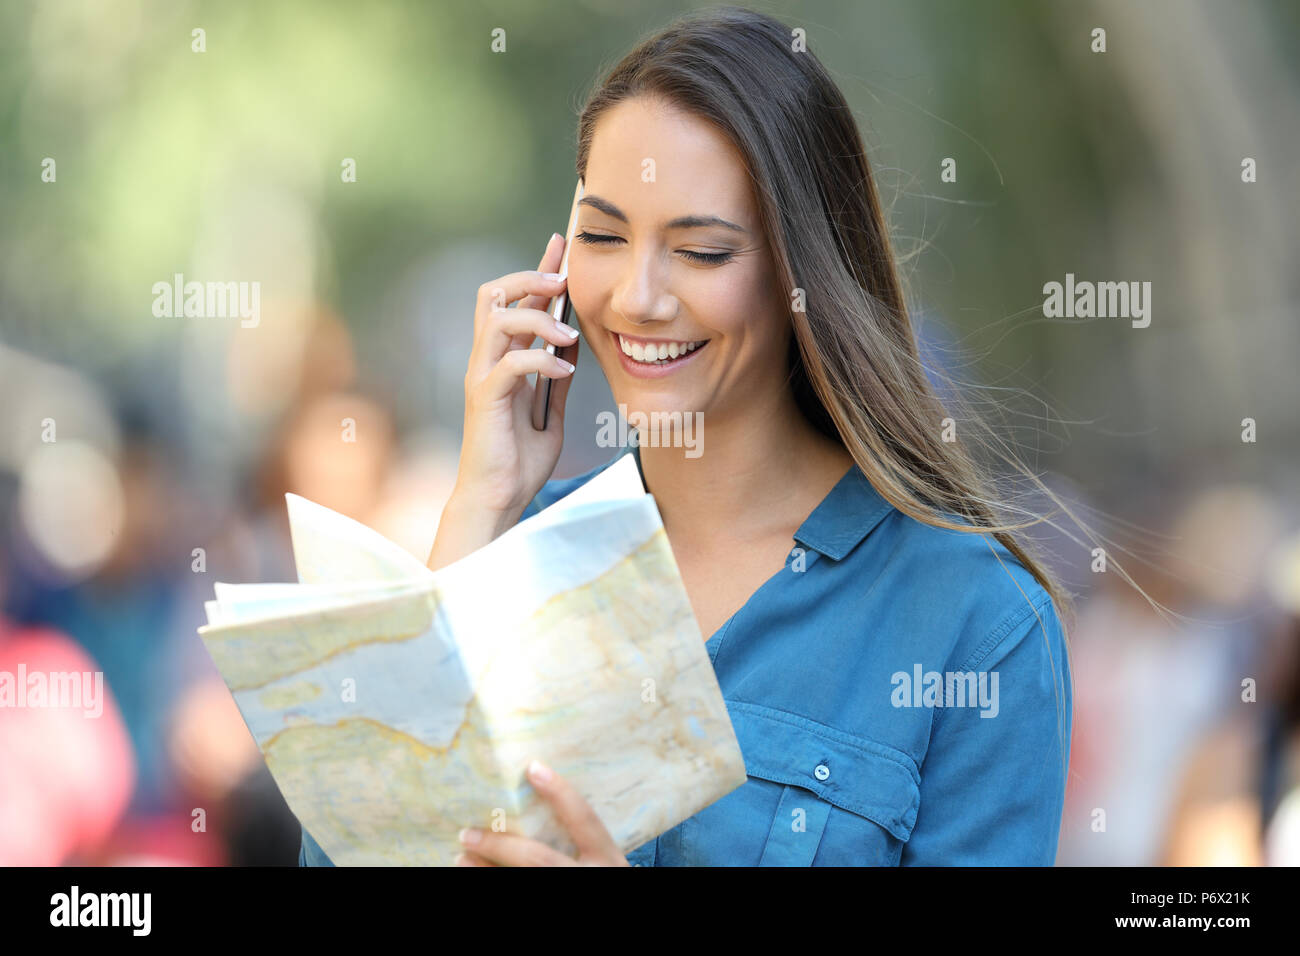 Happy tourist asking information on phone consulting a guide on the street - Stock Image